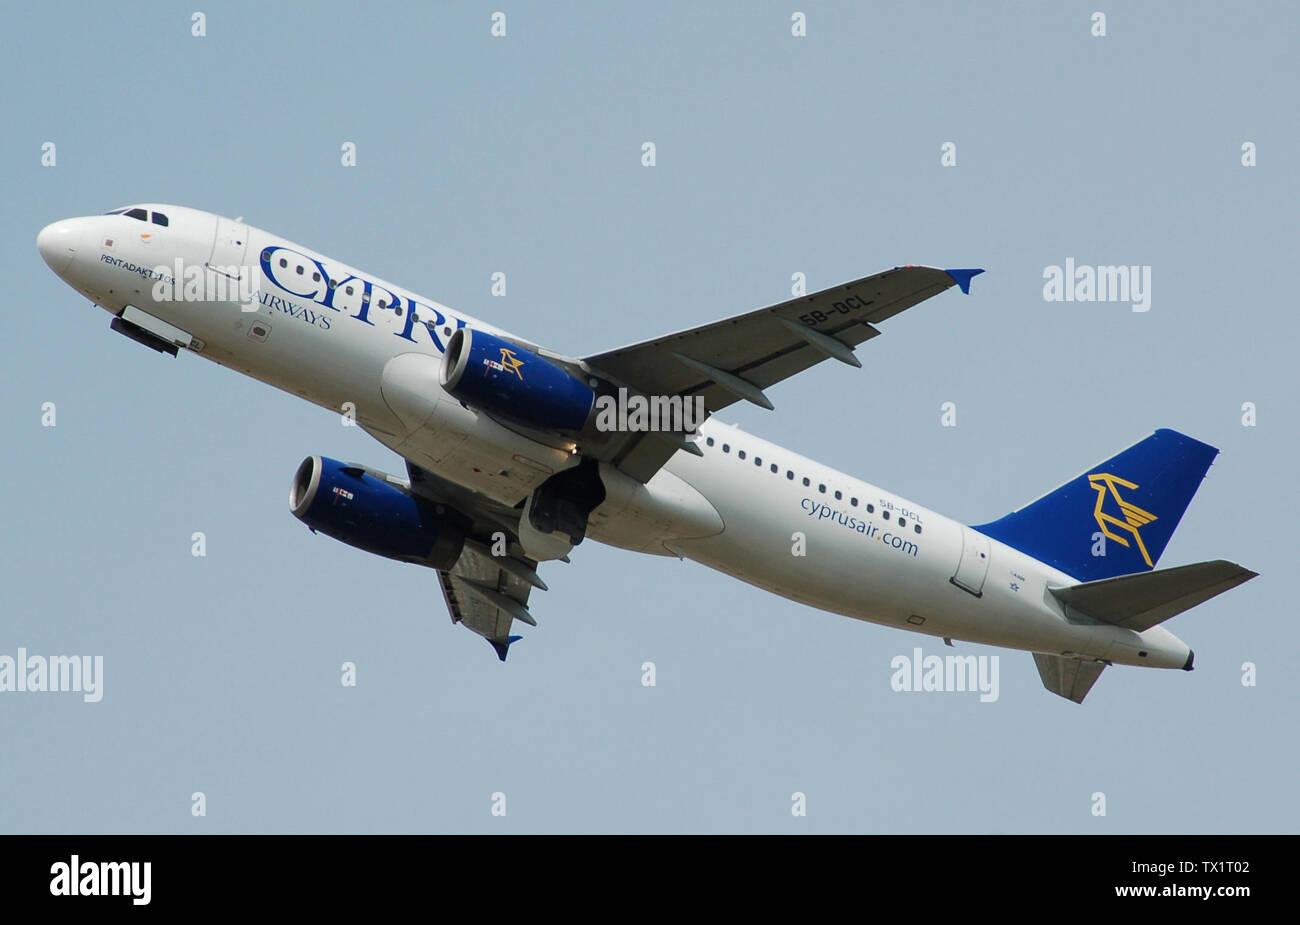 'Cyprus Airways Airbus A320-200 (5B-DCL) departs London Heathrow Airport, England, 2nd July 2014. The undercarriage doors are yet to close.; Taken on 2 July 2014; My own photograph, taken with a Nikon D50 DSLR and a Nikon 18-200 mm lens.; Myself (Adrian Pingstone).; ' - Stock Image